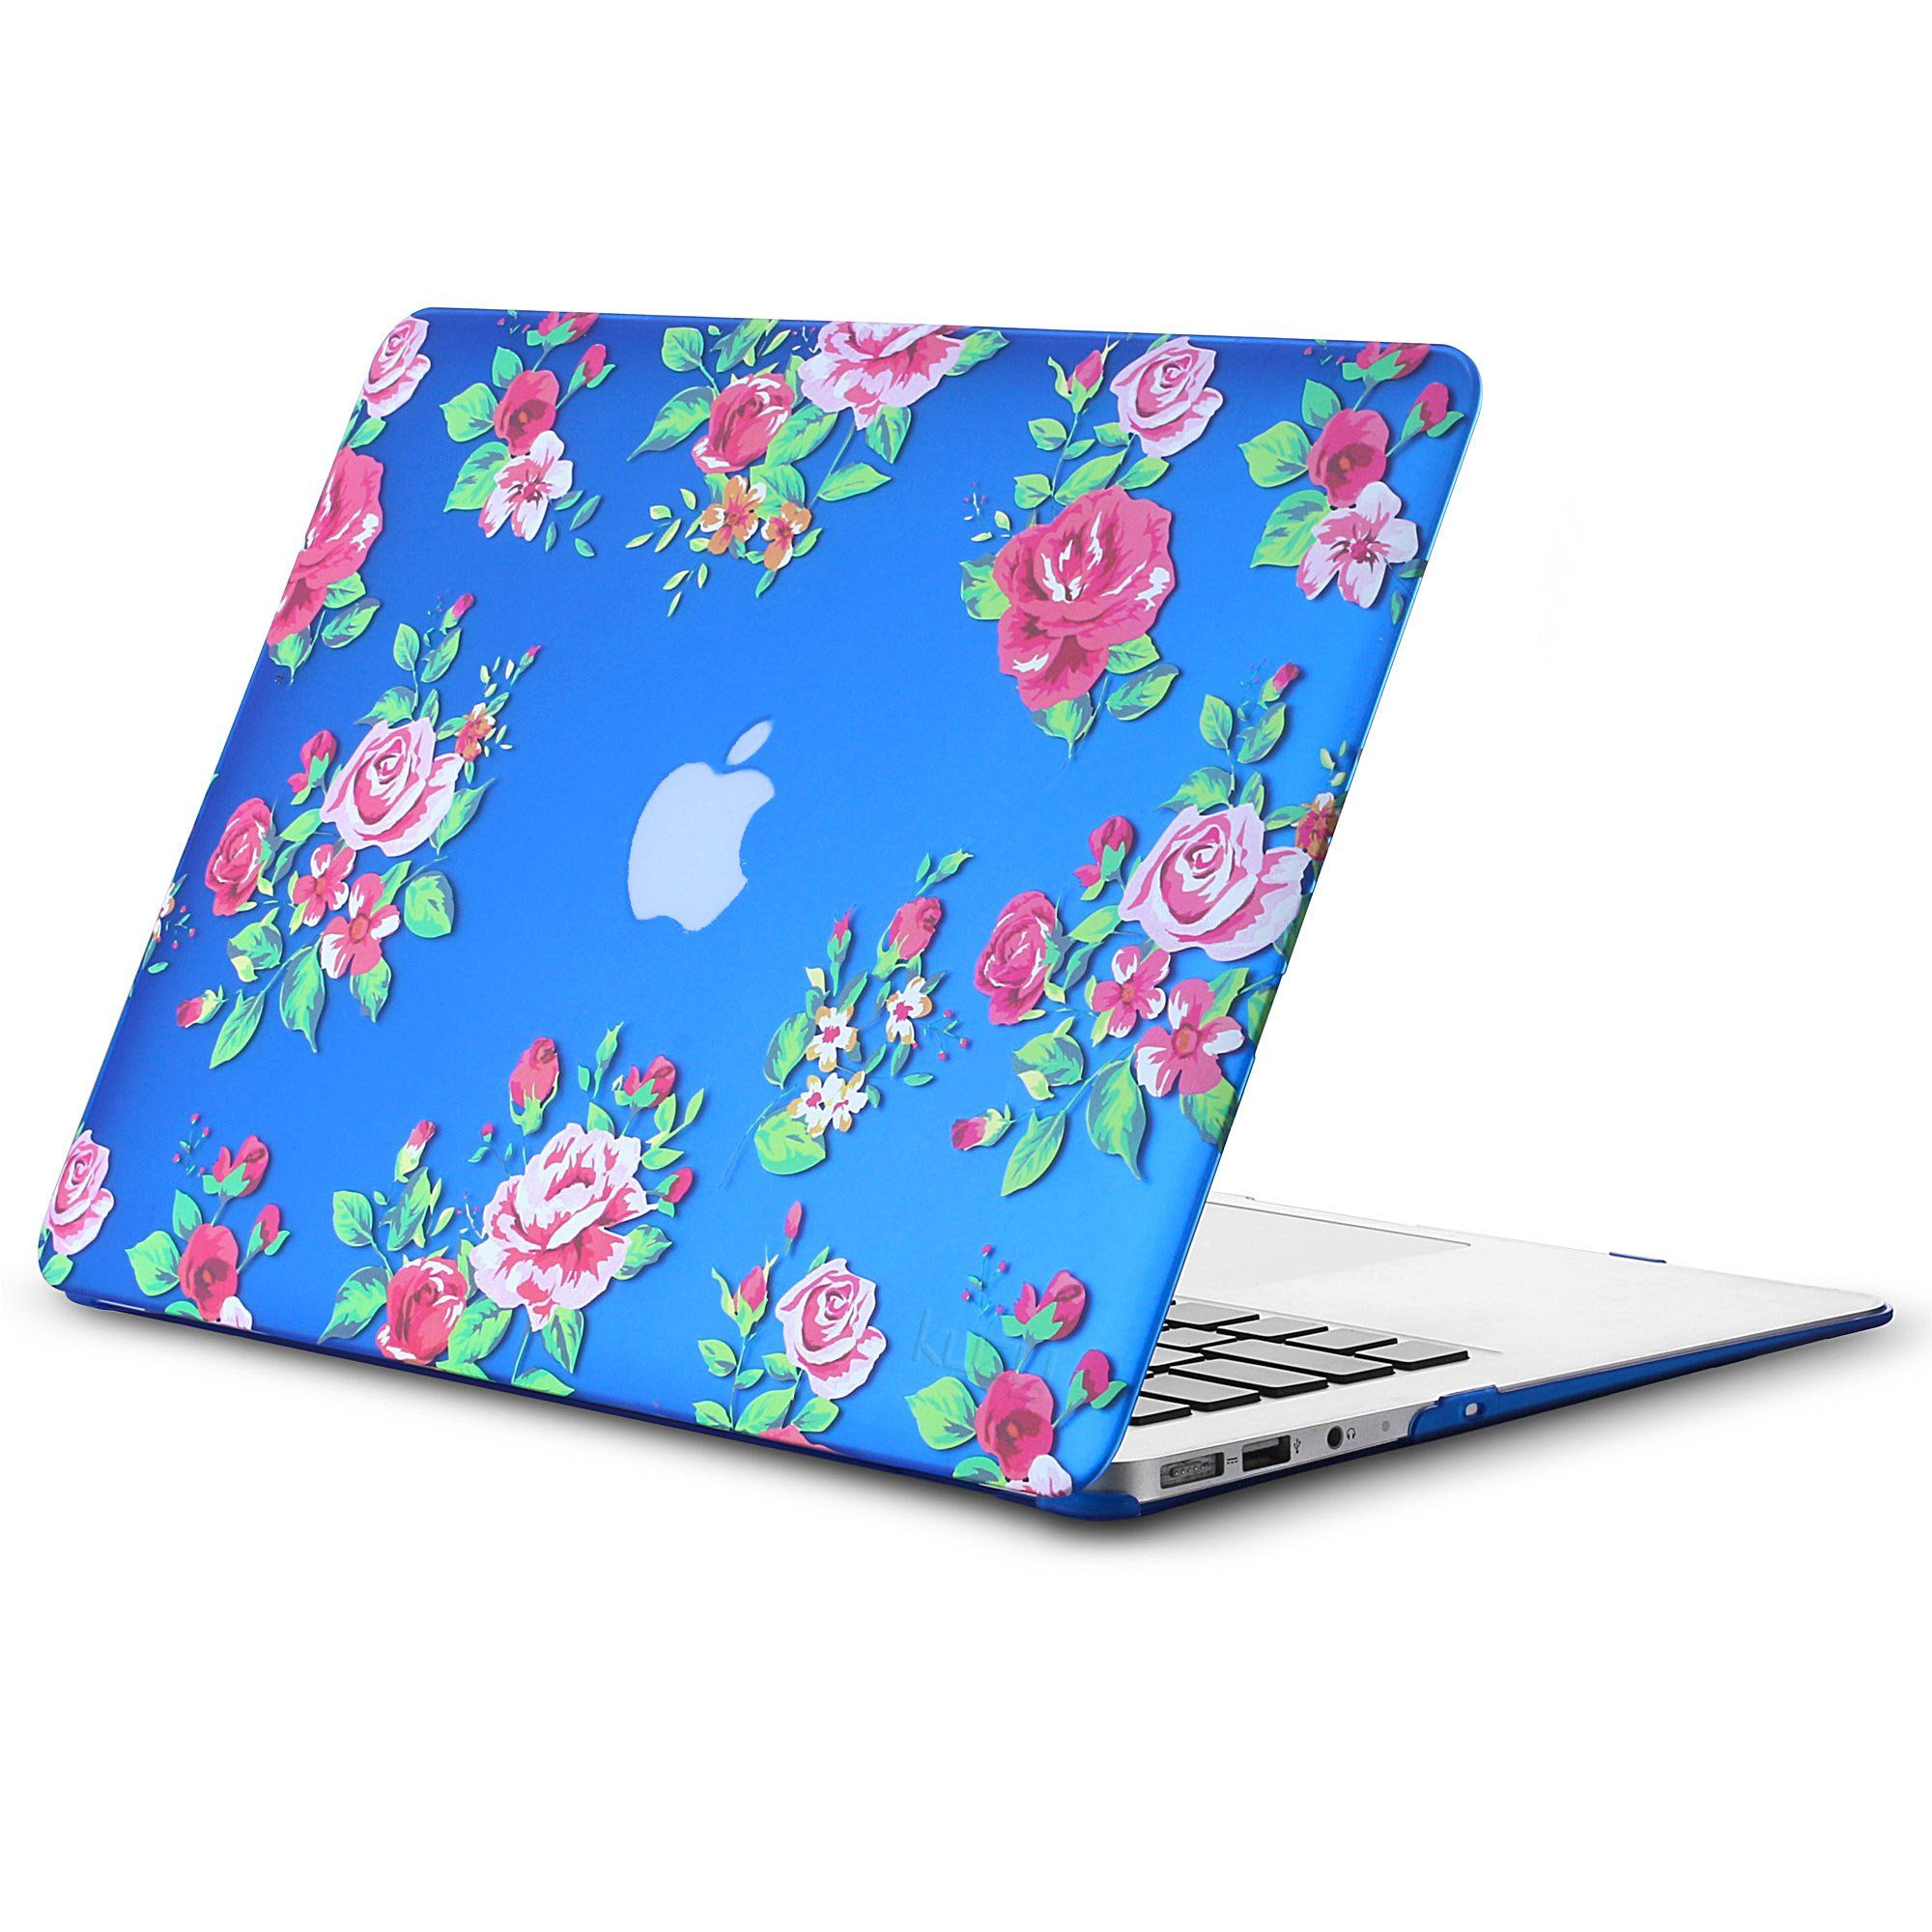 Flowers Laptop Sleeve case 13-15 inch Notebook Computer Bag Protective Case Cover for MacBook Pro//MacBook Air